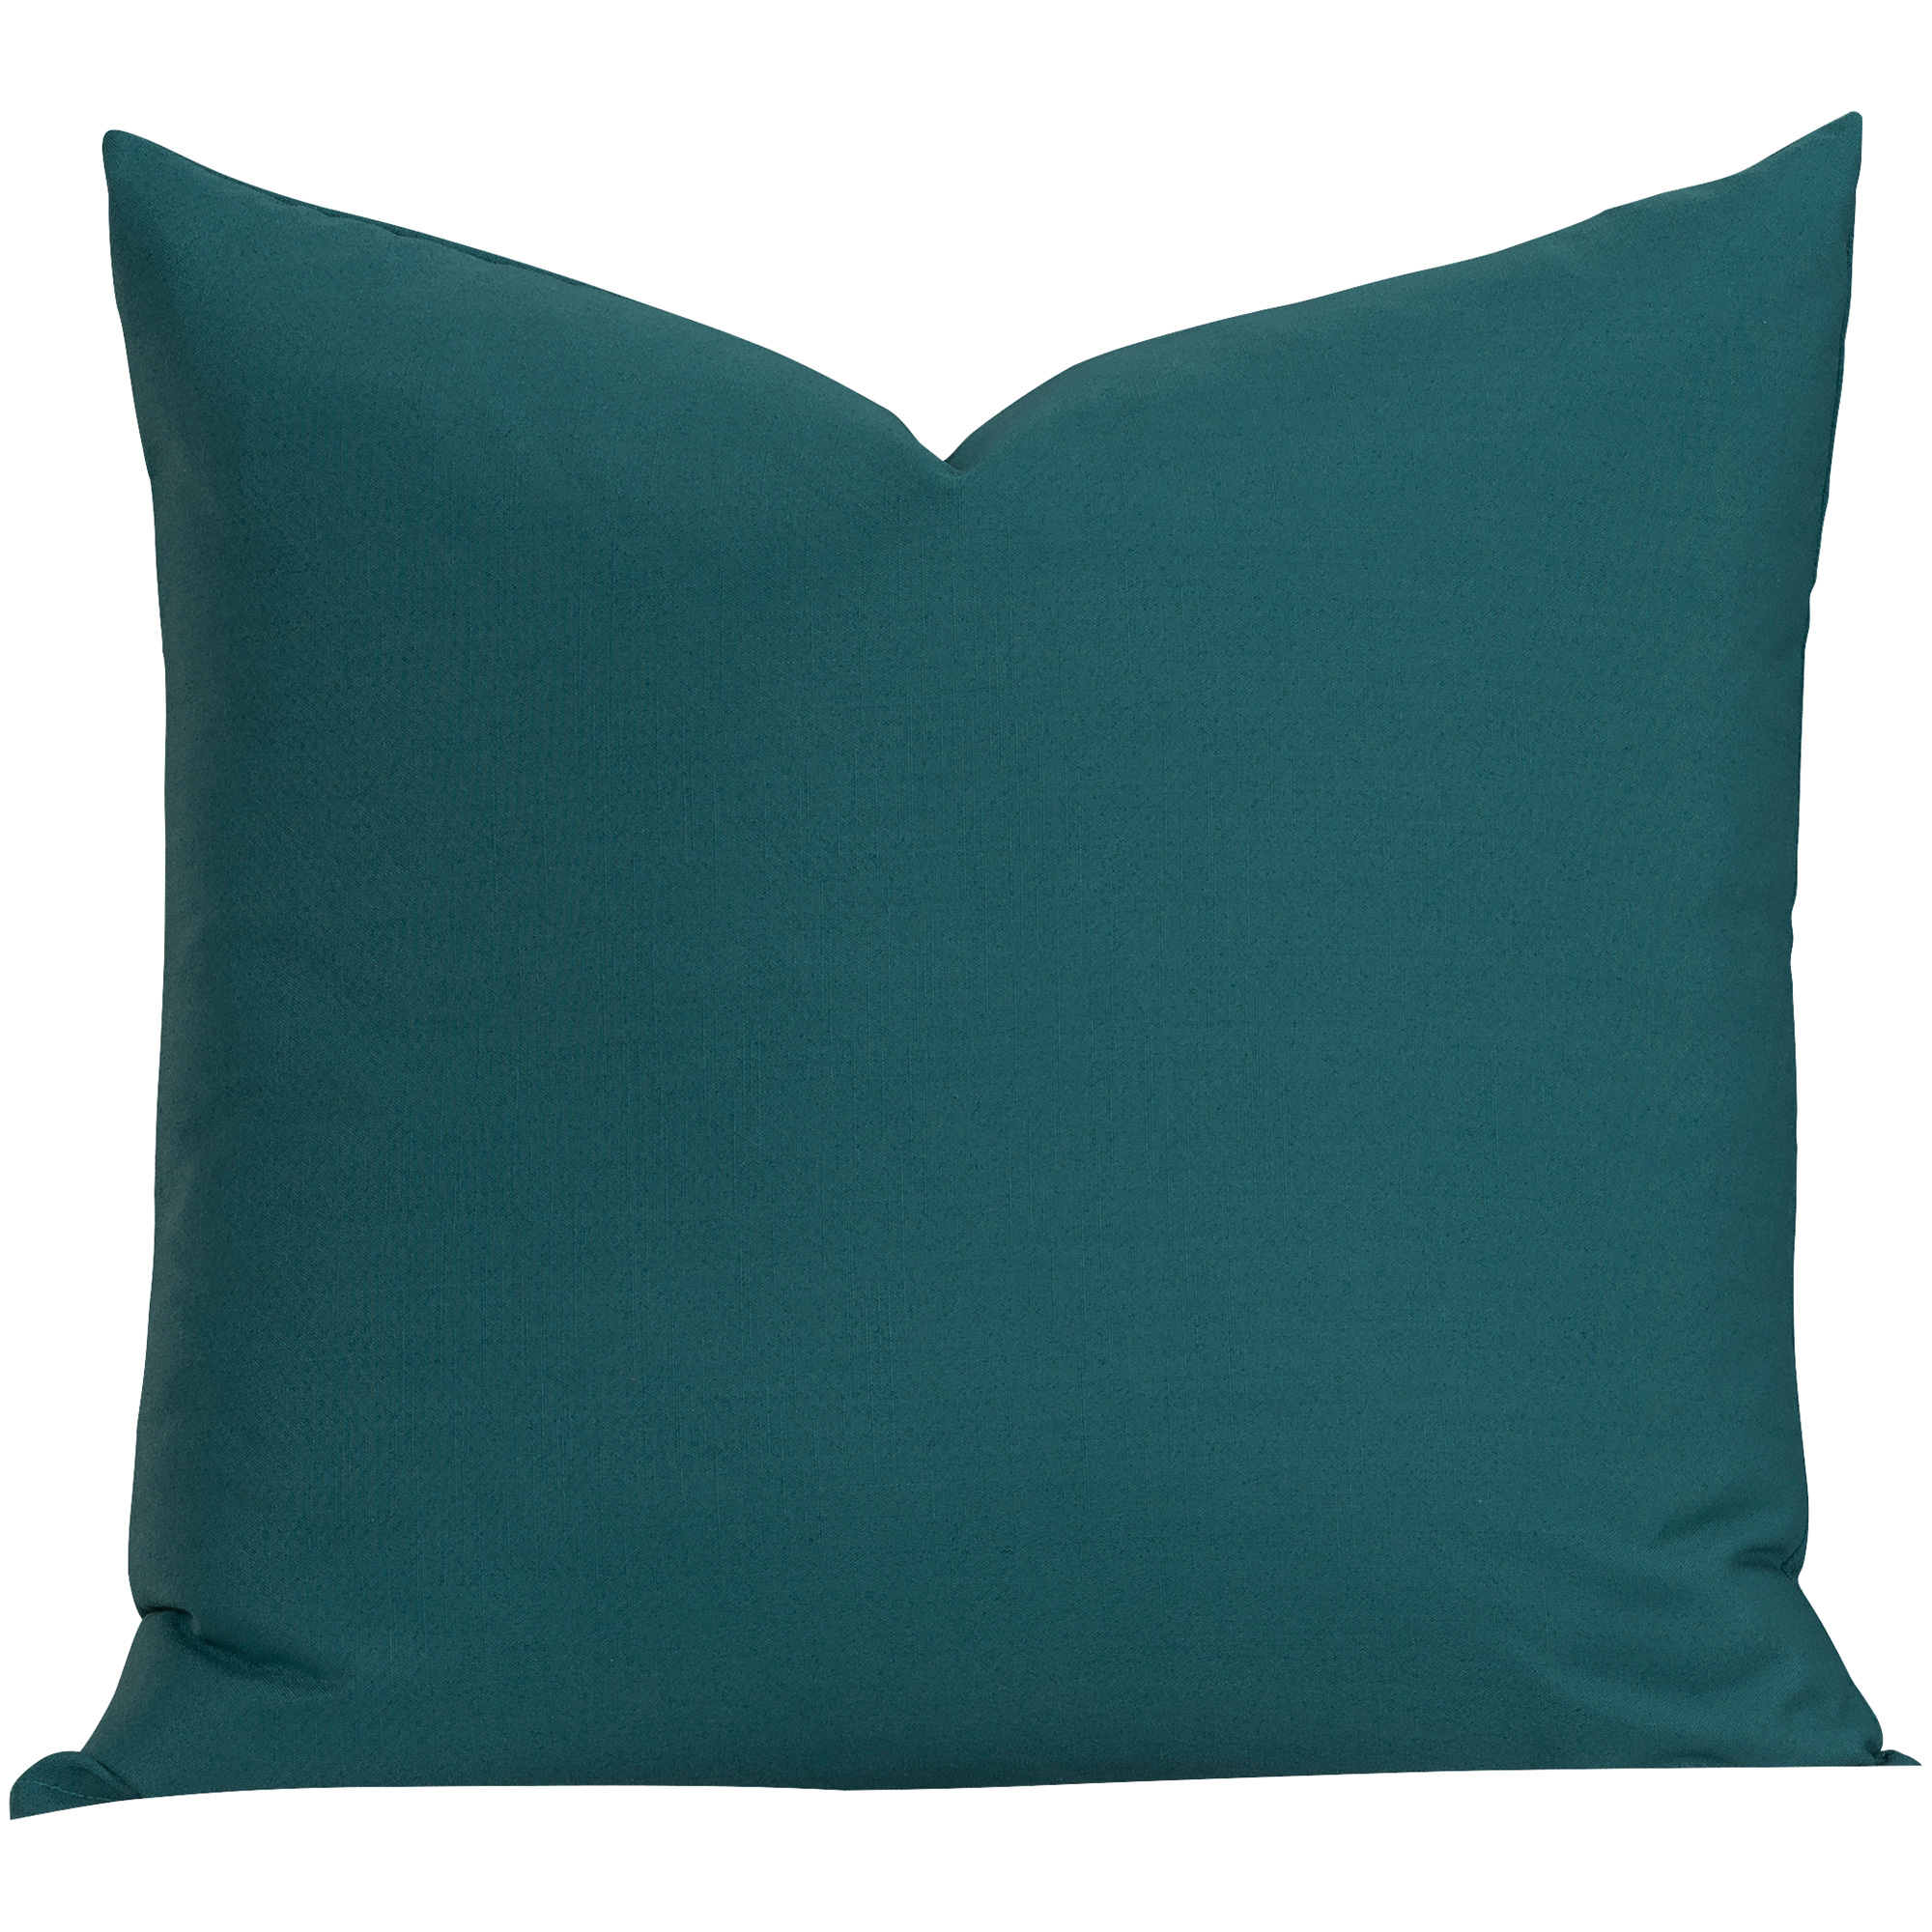 Sis Enterprises | Atlantic Teal Euro Pillow